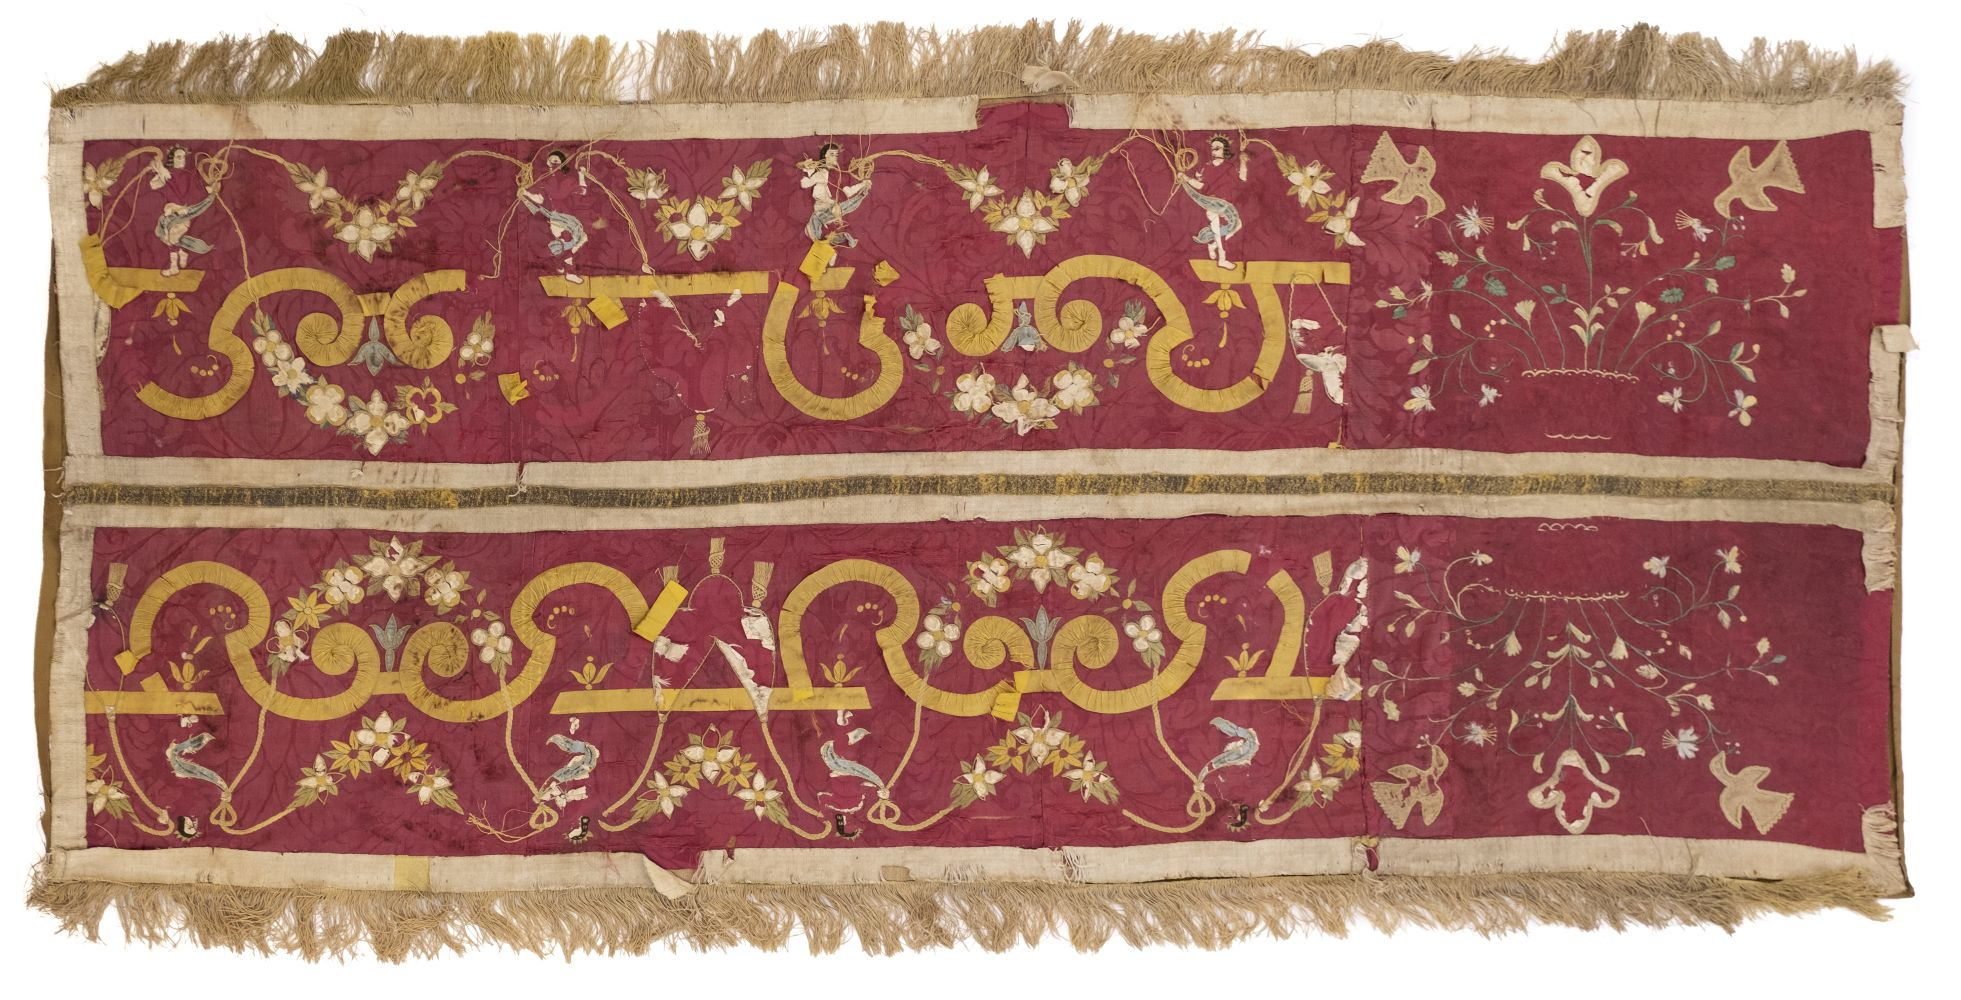 * Embroidered panel. An embroidered and appliqued panel, late 17th century